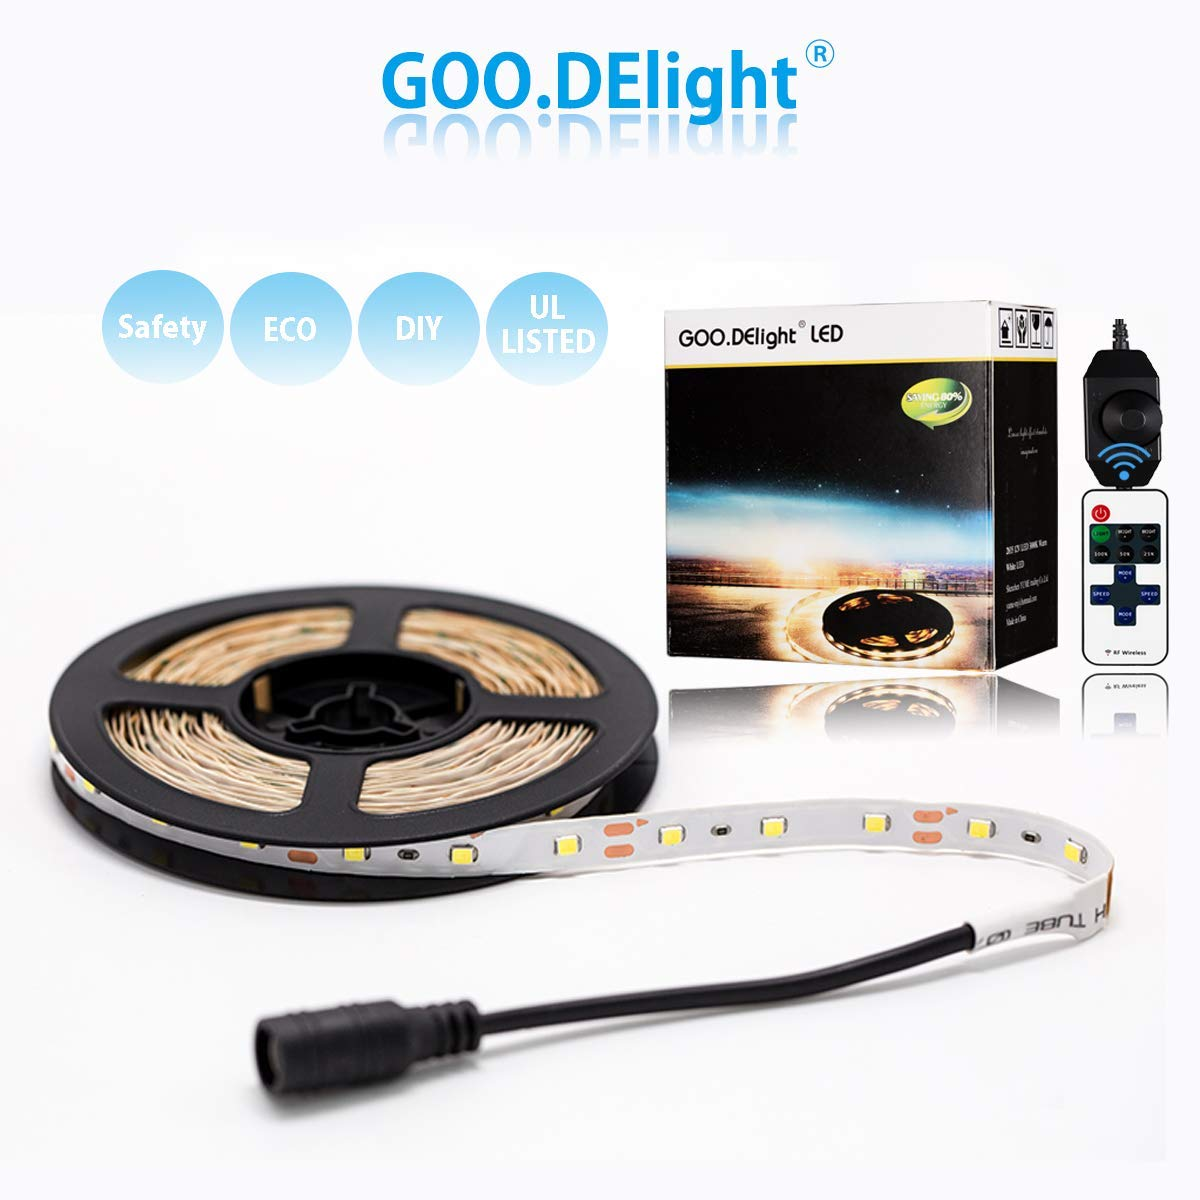 Led Strip Lights, Led Tape Lights with Remote Control Dimmable Power Supply led Lights , Warm White 16.4 ft Led Rope Lights for Indoor Outdoor Christmas Holiday Party Wedding Car TV Bar Home Kitchen